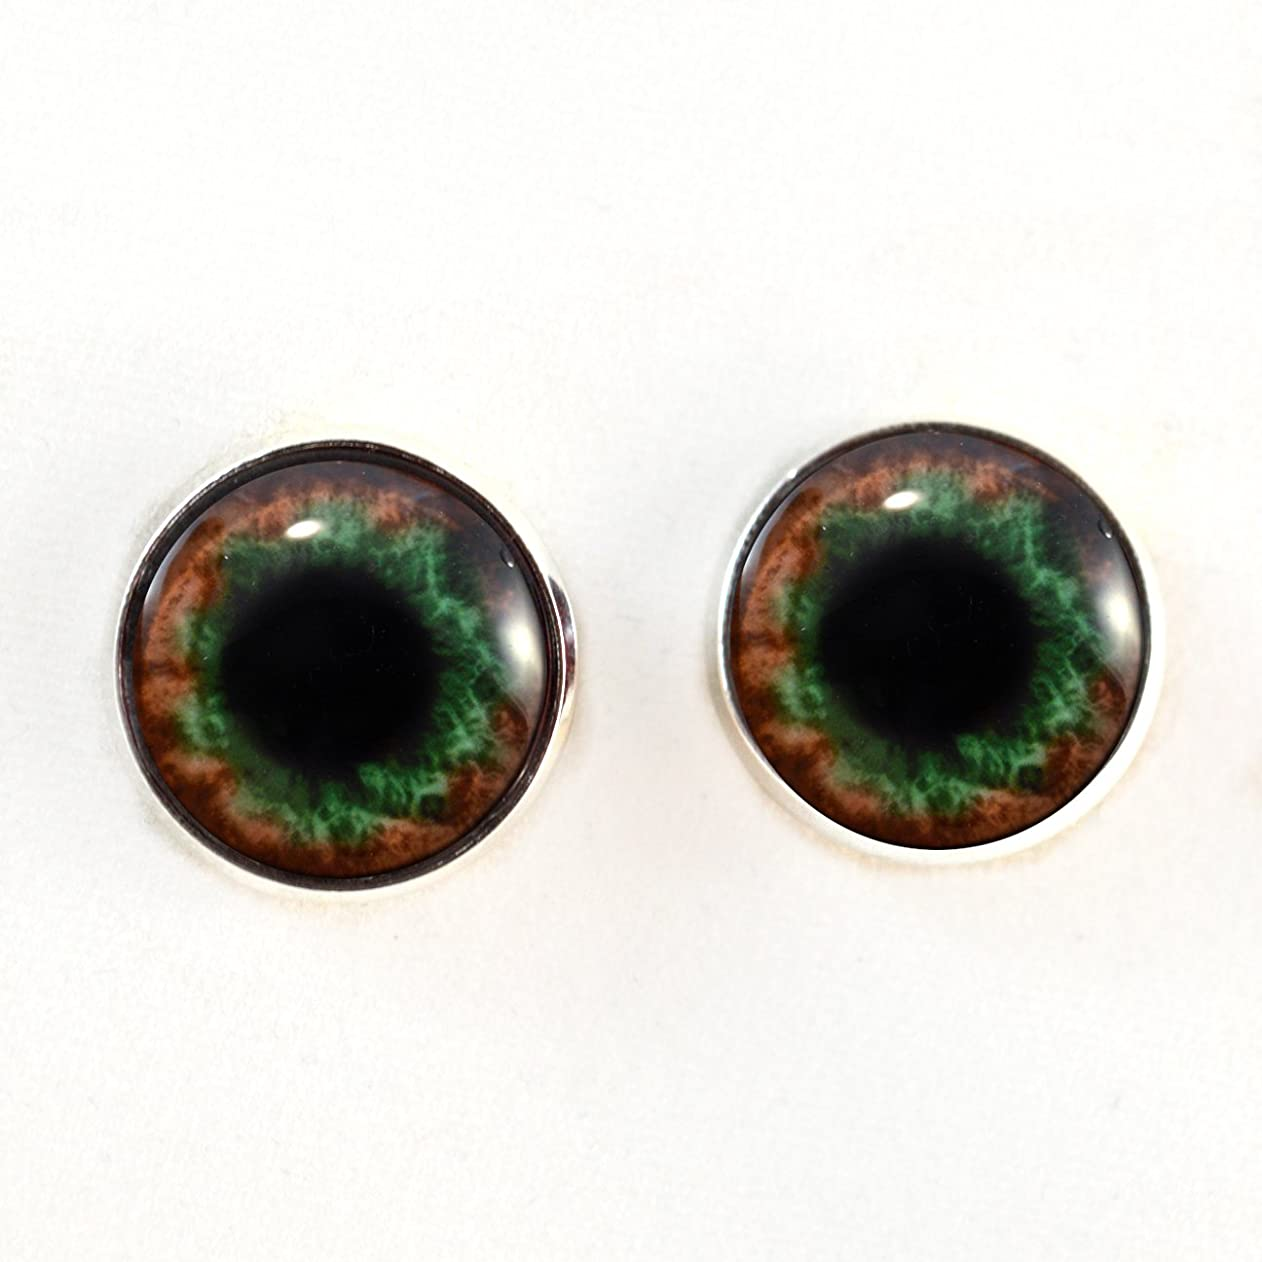 Sew On Eyes Green Brown Human Loops 16mm Glass Eye Cabochons for Fantasy Art Doll Stuffed Animal Soft Sculptures or Jewelry Making Crafts Set of 2 adulljkxjav92540